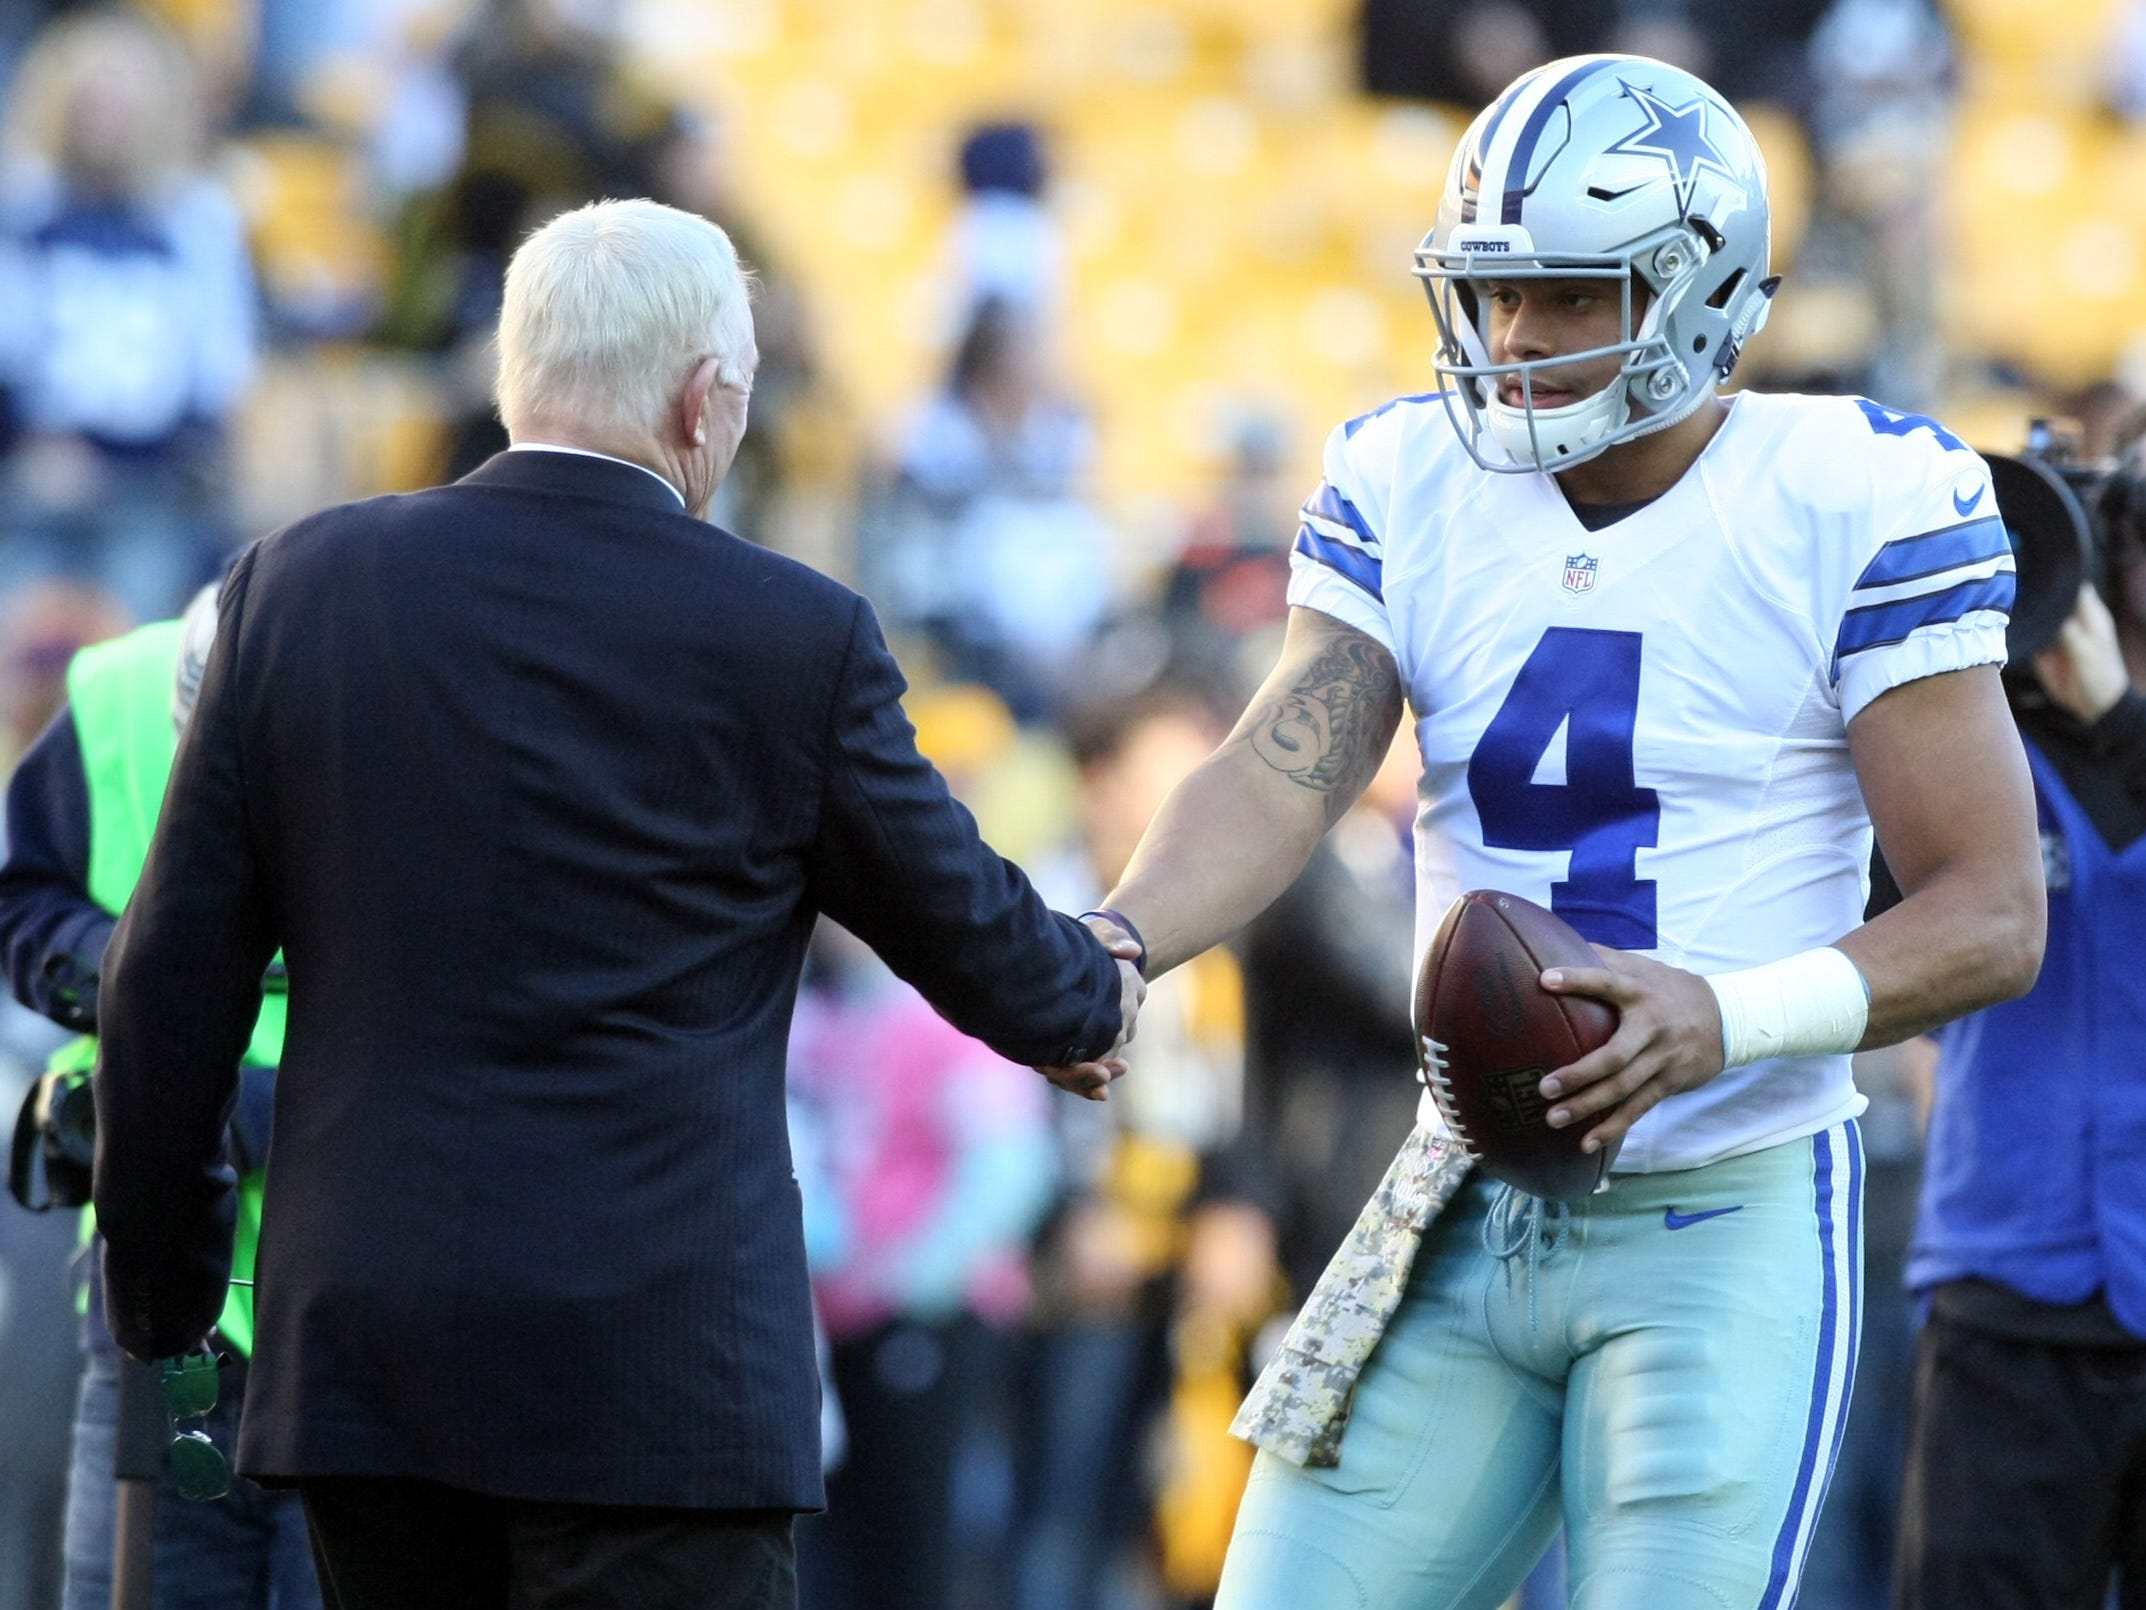 Nfl Dallas Cowboys At Pittsburgh Steelers